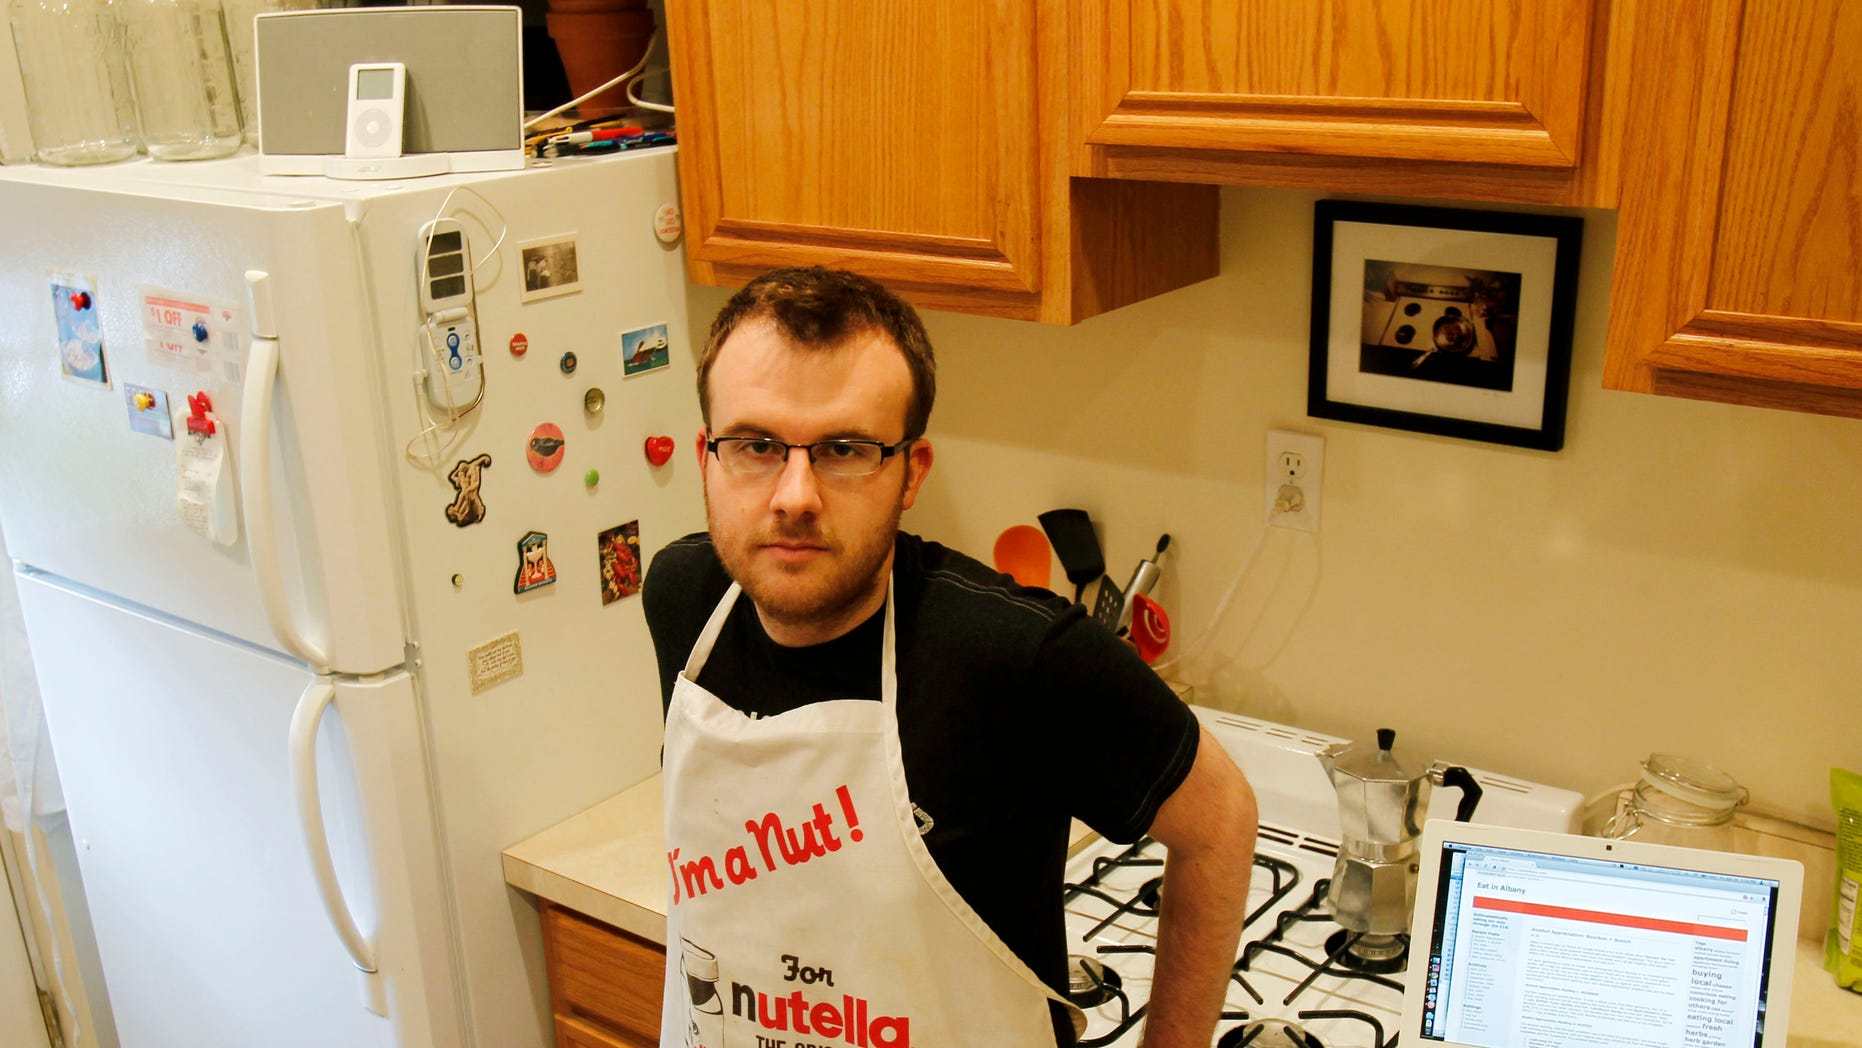 """Brian Kraus, who hosts a food blog, poses in his kitchen in Albany, N.Y., on Friday, April 30, 2010. Kraus loves to cook but has only one cookbook. When Kraus wanted tips on preparing a whole fish, he headed to the Web and did a """"mishmash"""" of stuff he liked from different sites.   (AP Photo/Mike Groll)"""